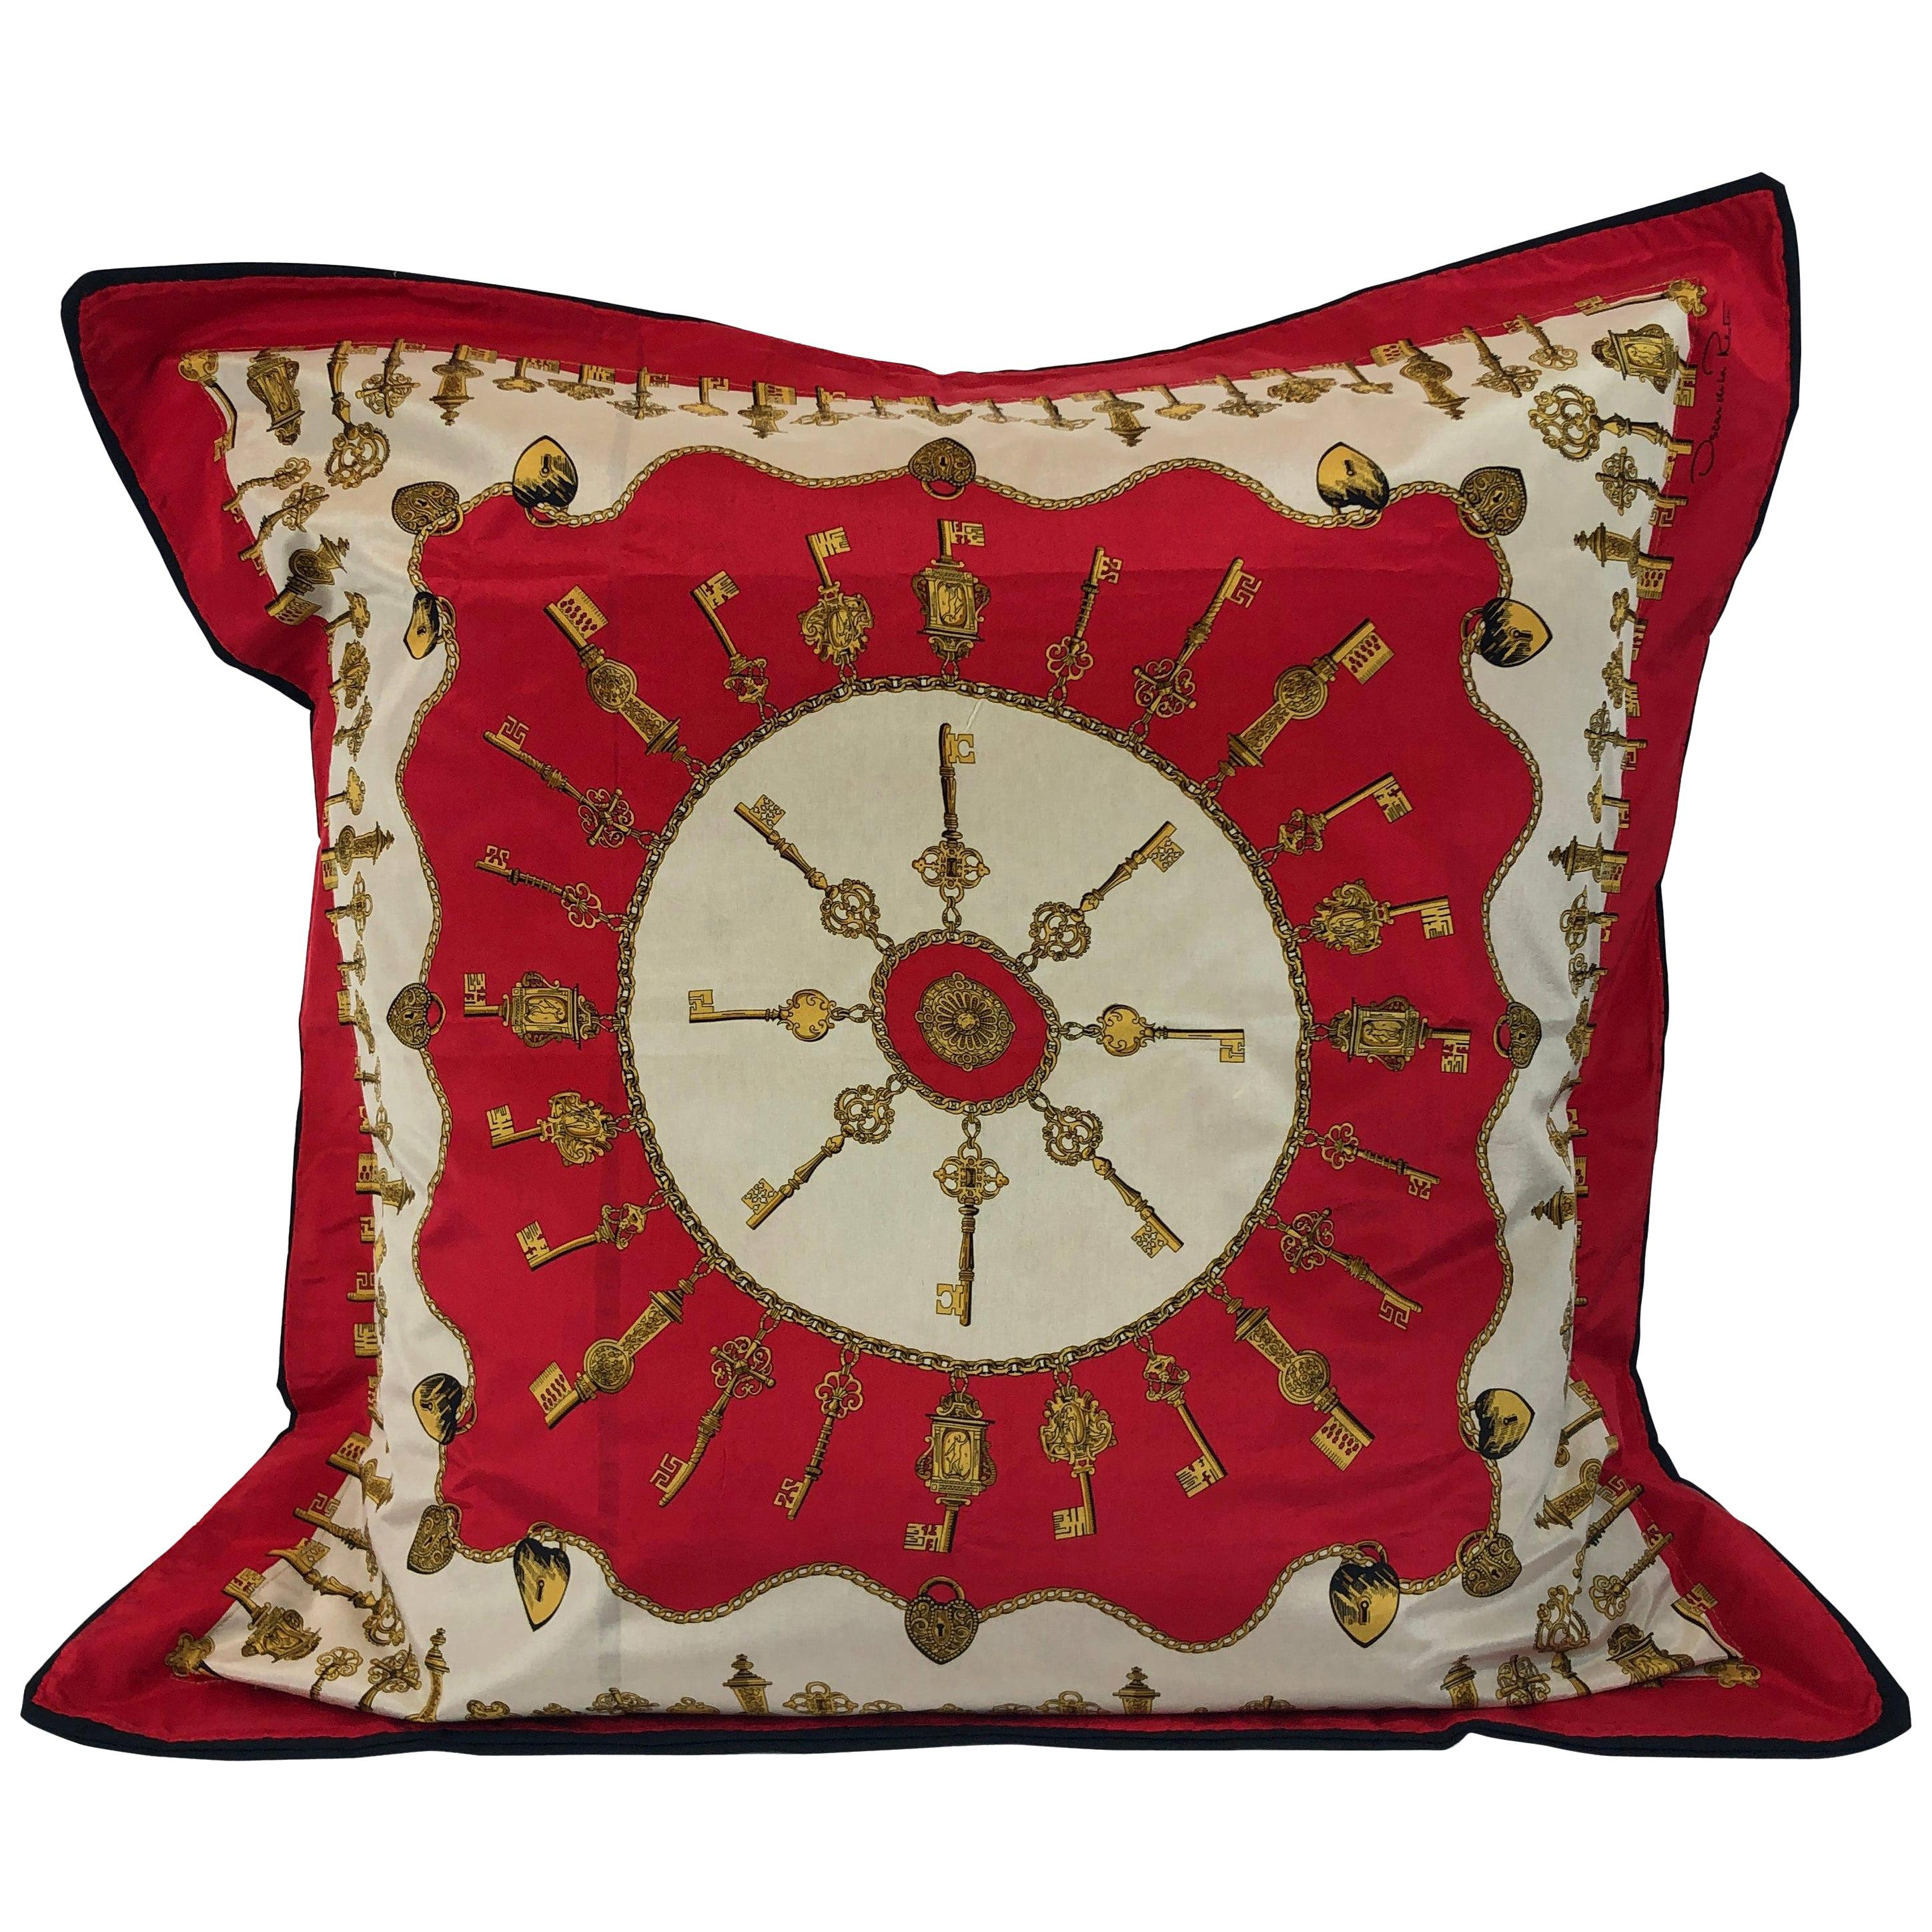 Oscar De La Renta Silk Scarf In Red Gold White And Black And Upholstered Pillow For Sale At 1stdibs